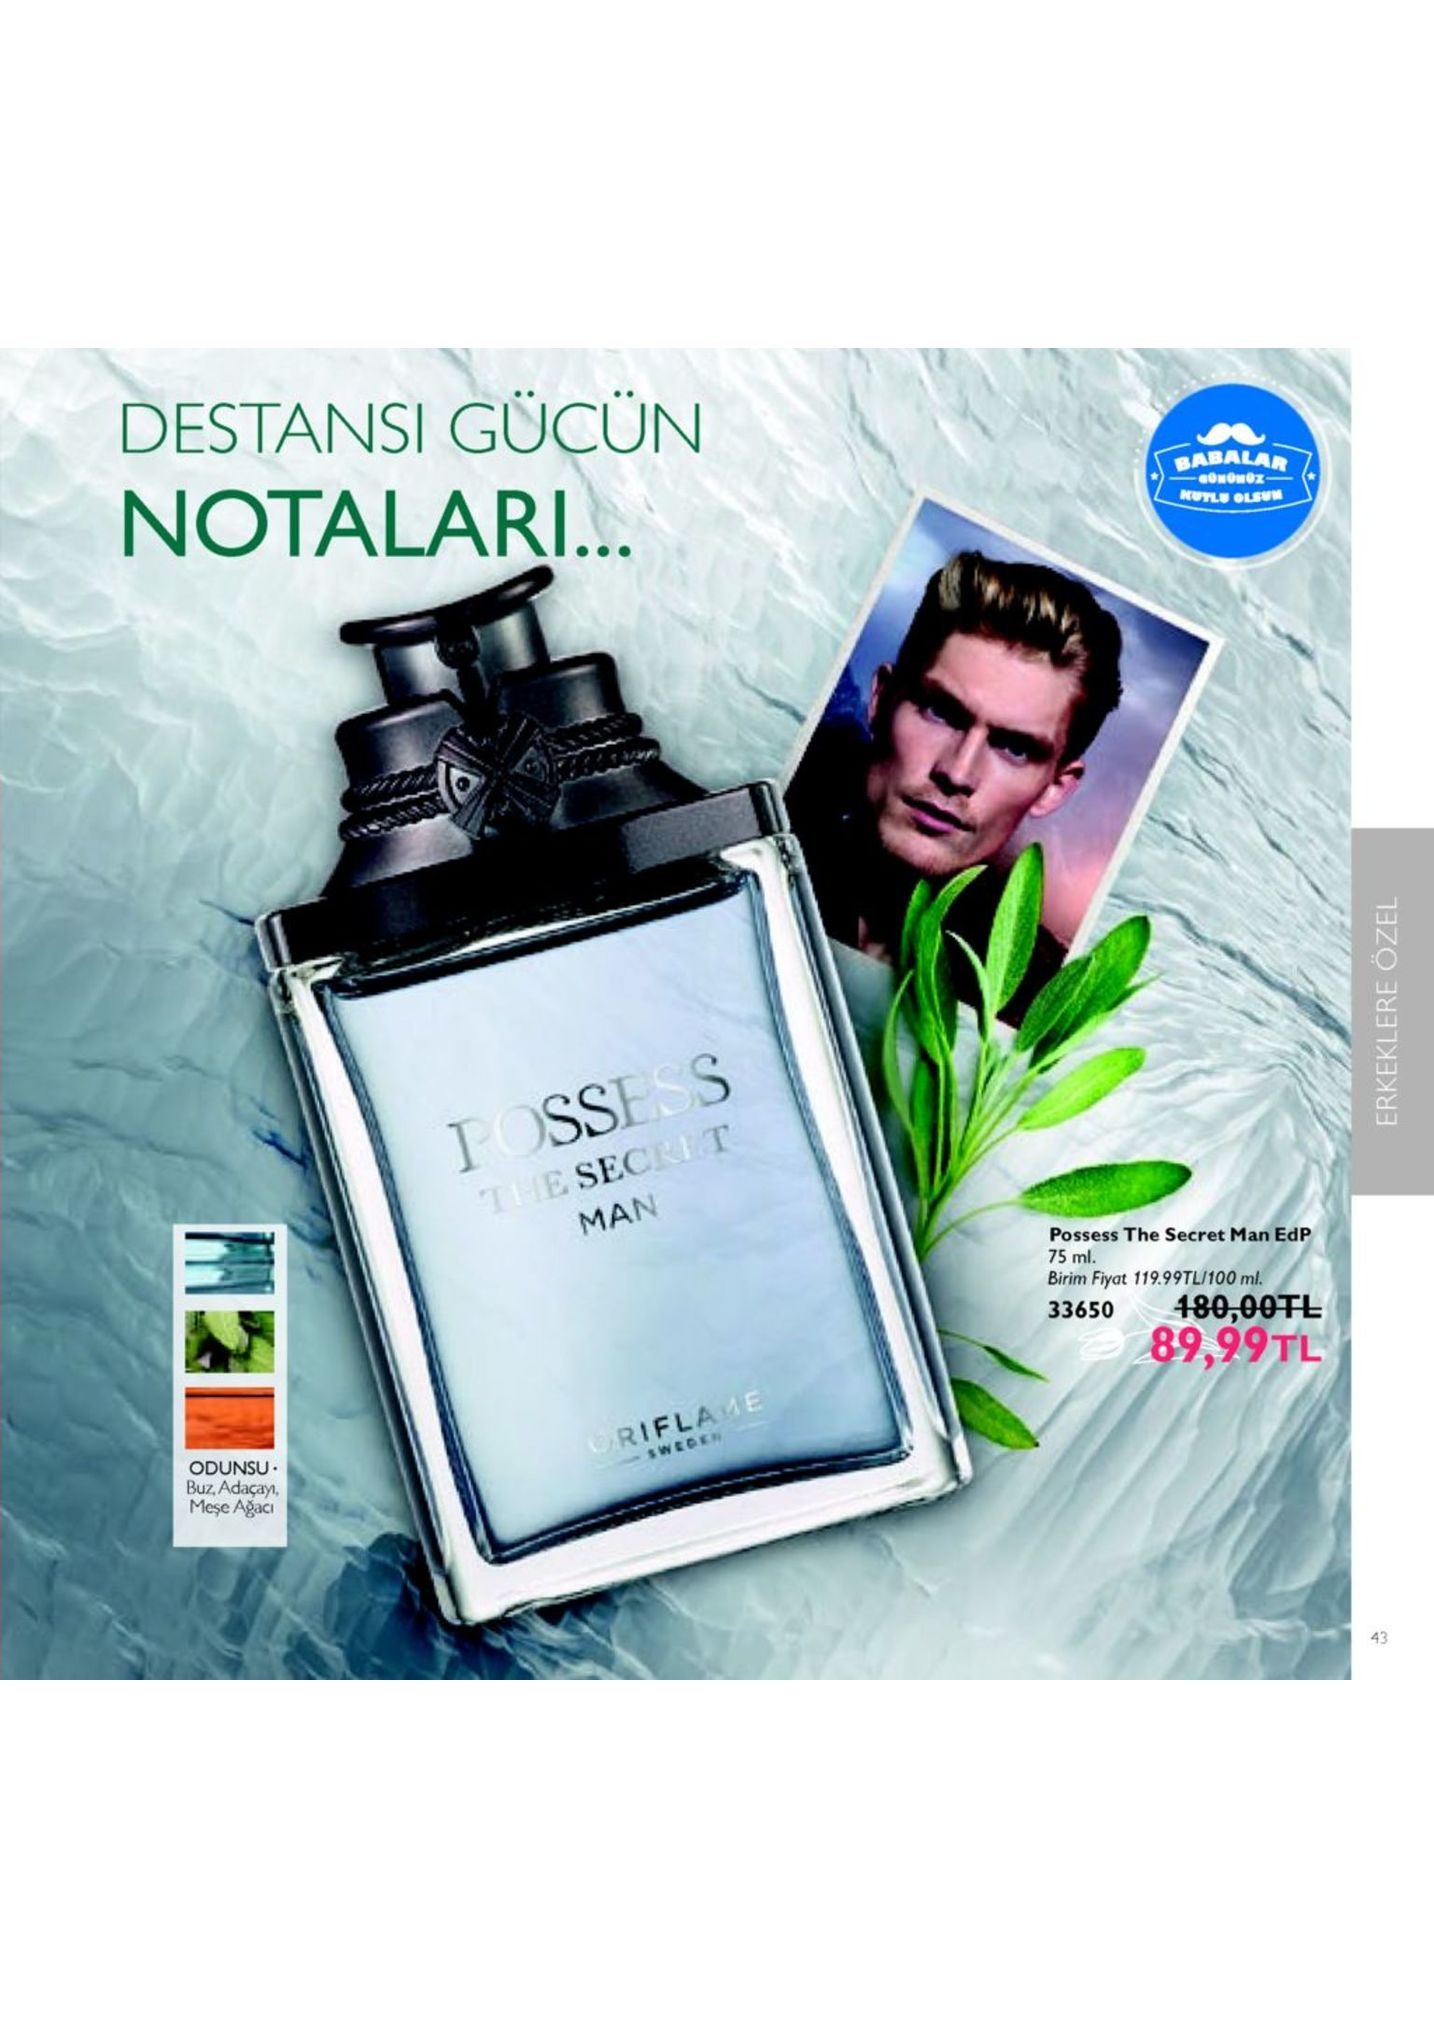 destansi gucun notalari sabalar . t ssi s e sec man possess the secret man edp 75 ml. birim fiyat 119.99tl/100 ml. 33650 480,00tl 89,99tl rifla me odunsu buz, adaçay, meşe ağaci 43